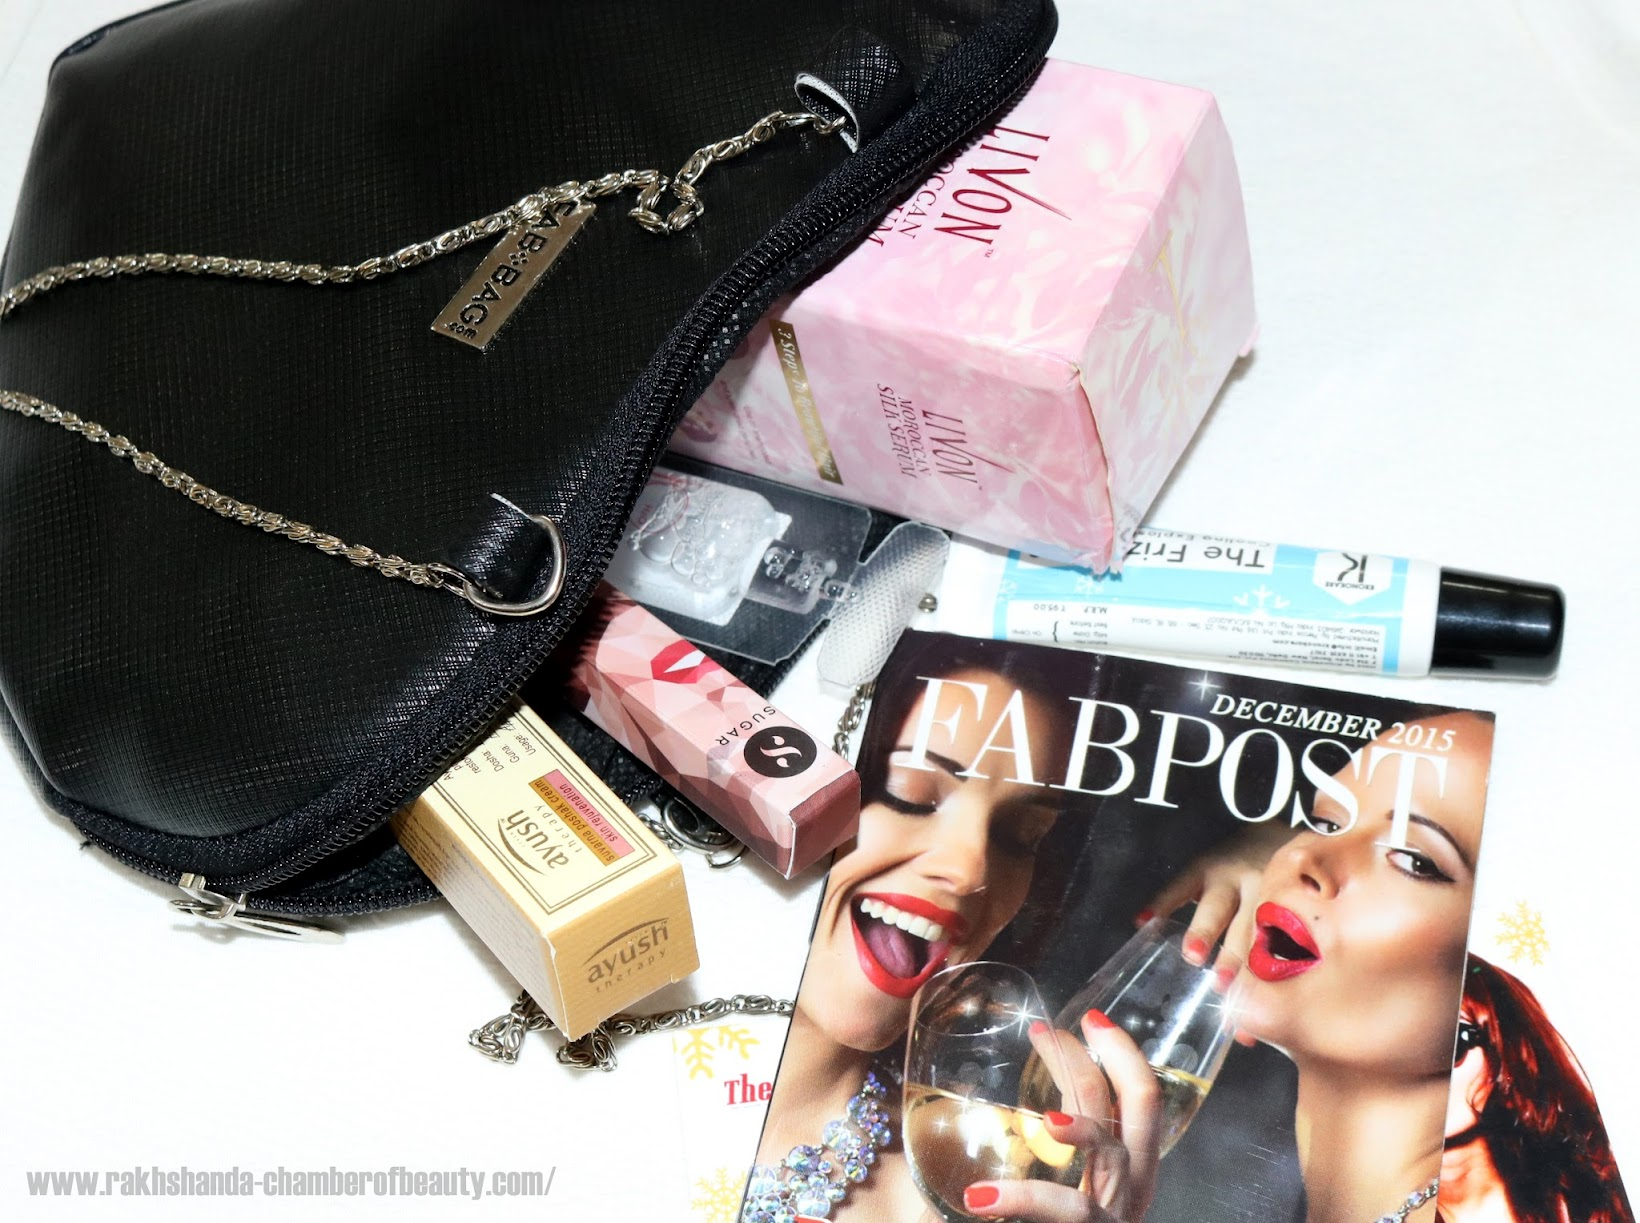 December 2015 Fab bag review(Party All Night)